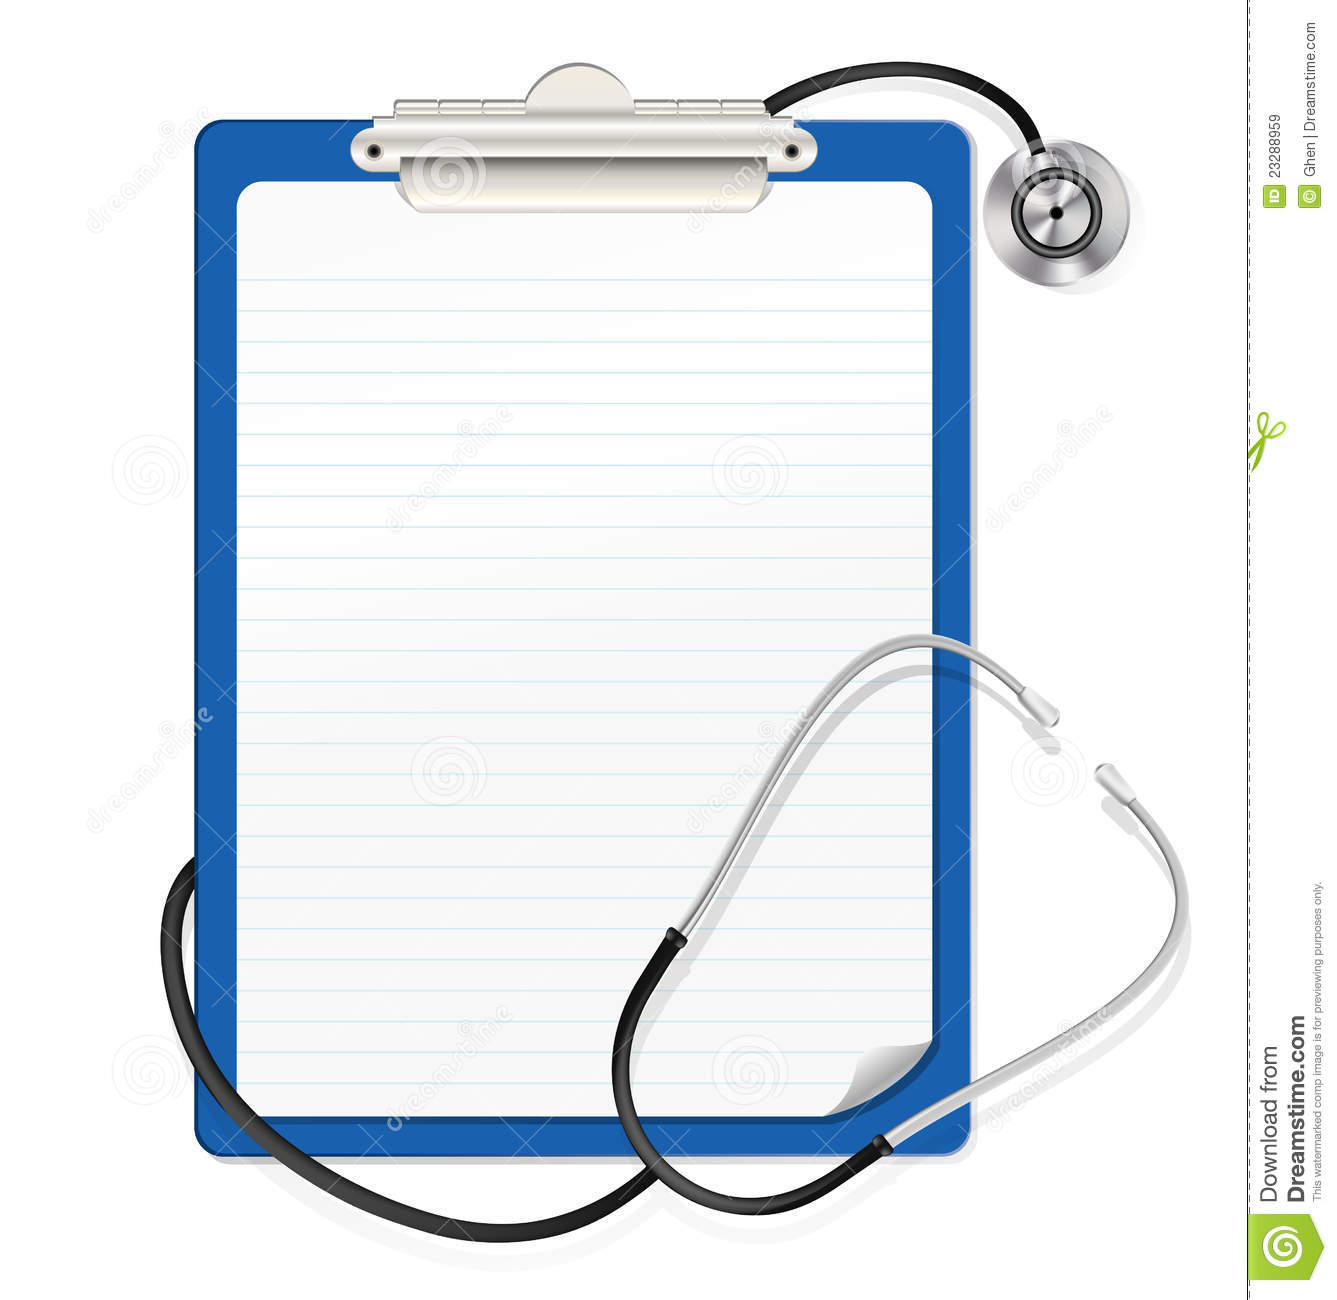 stethoscope and clipboard royalty free stock images Medical Logo Clip Art TIF Caduceus Medical Symbol Vector